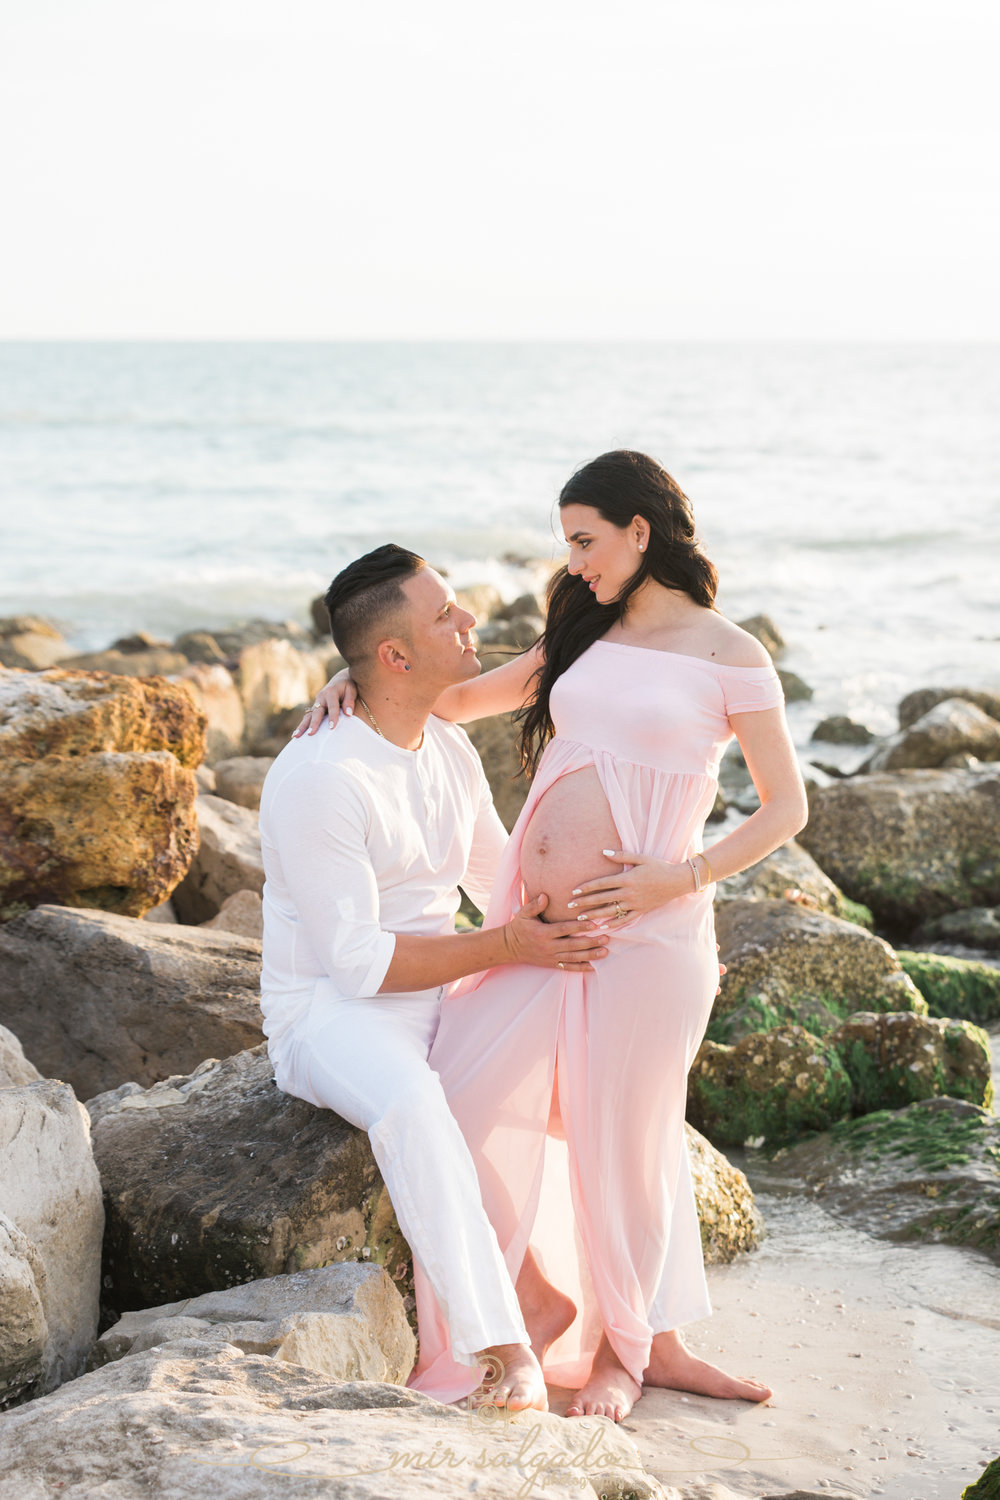 Tampa-maternity-photographer, Beach-photographer, beach-maternity-session